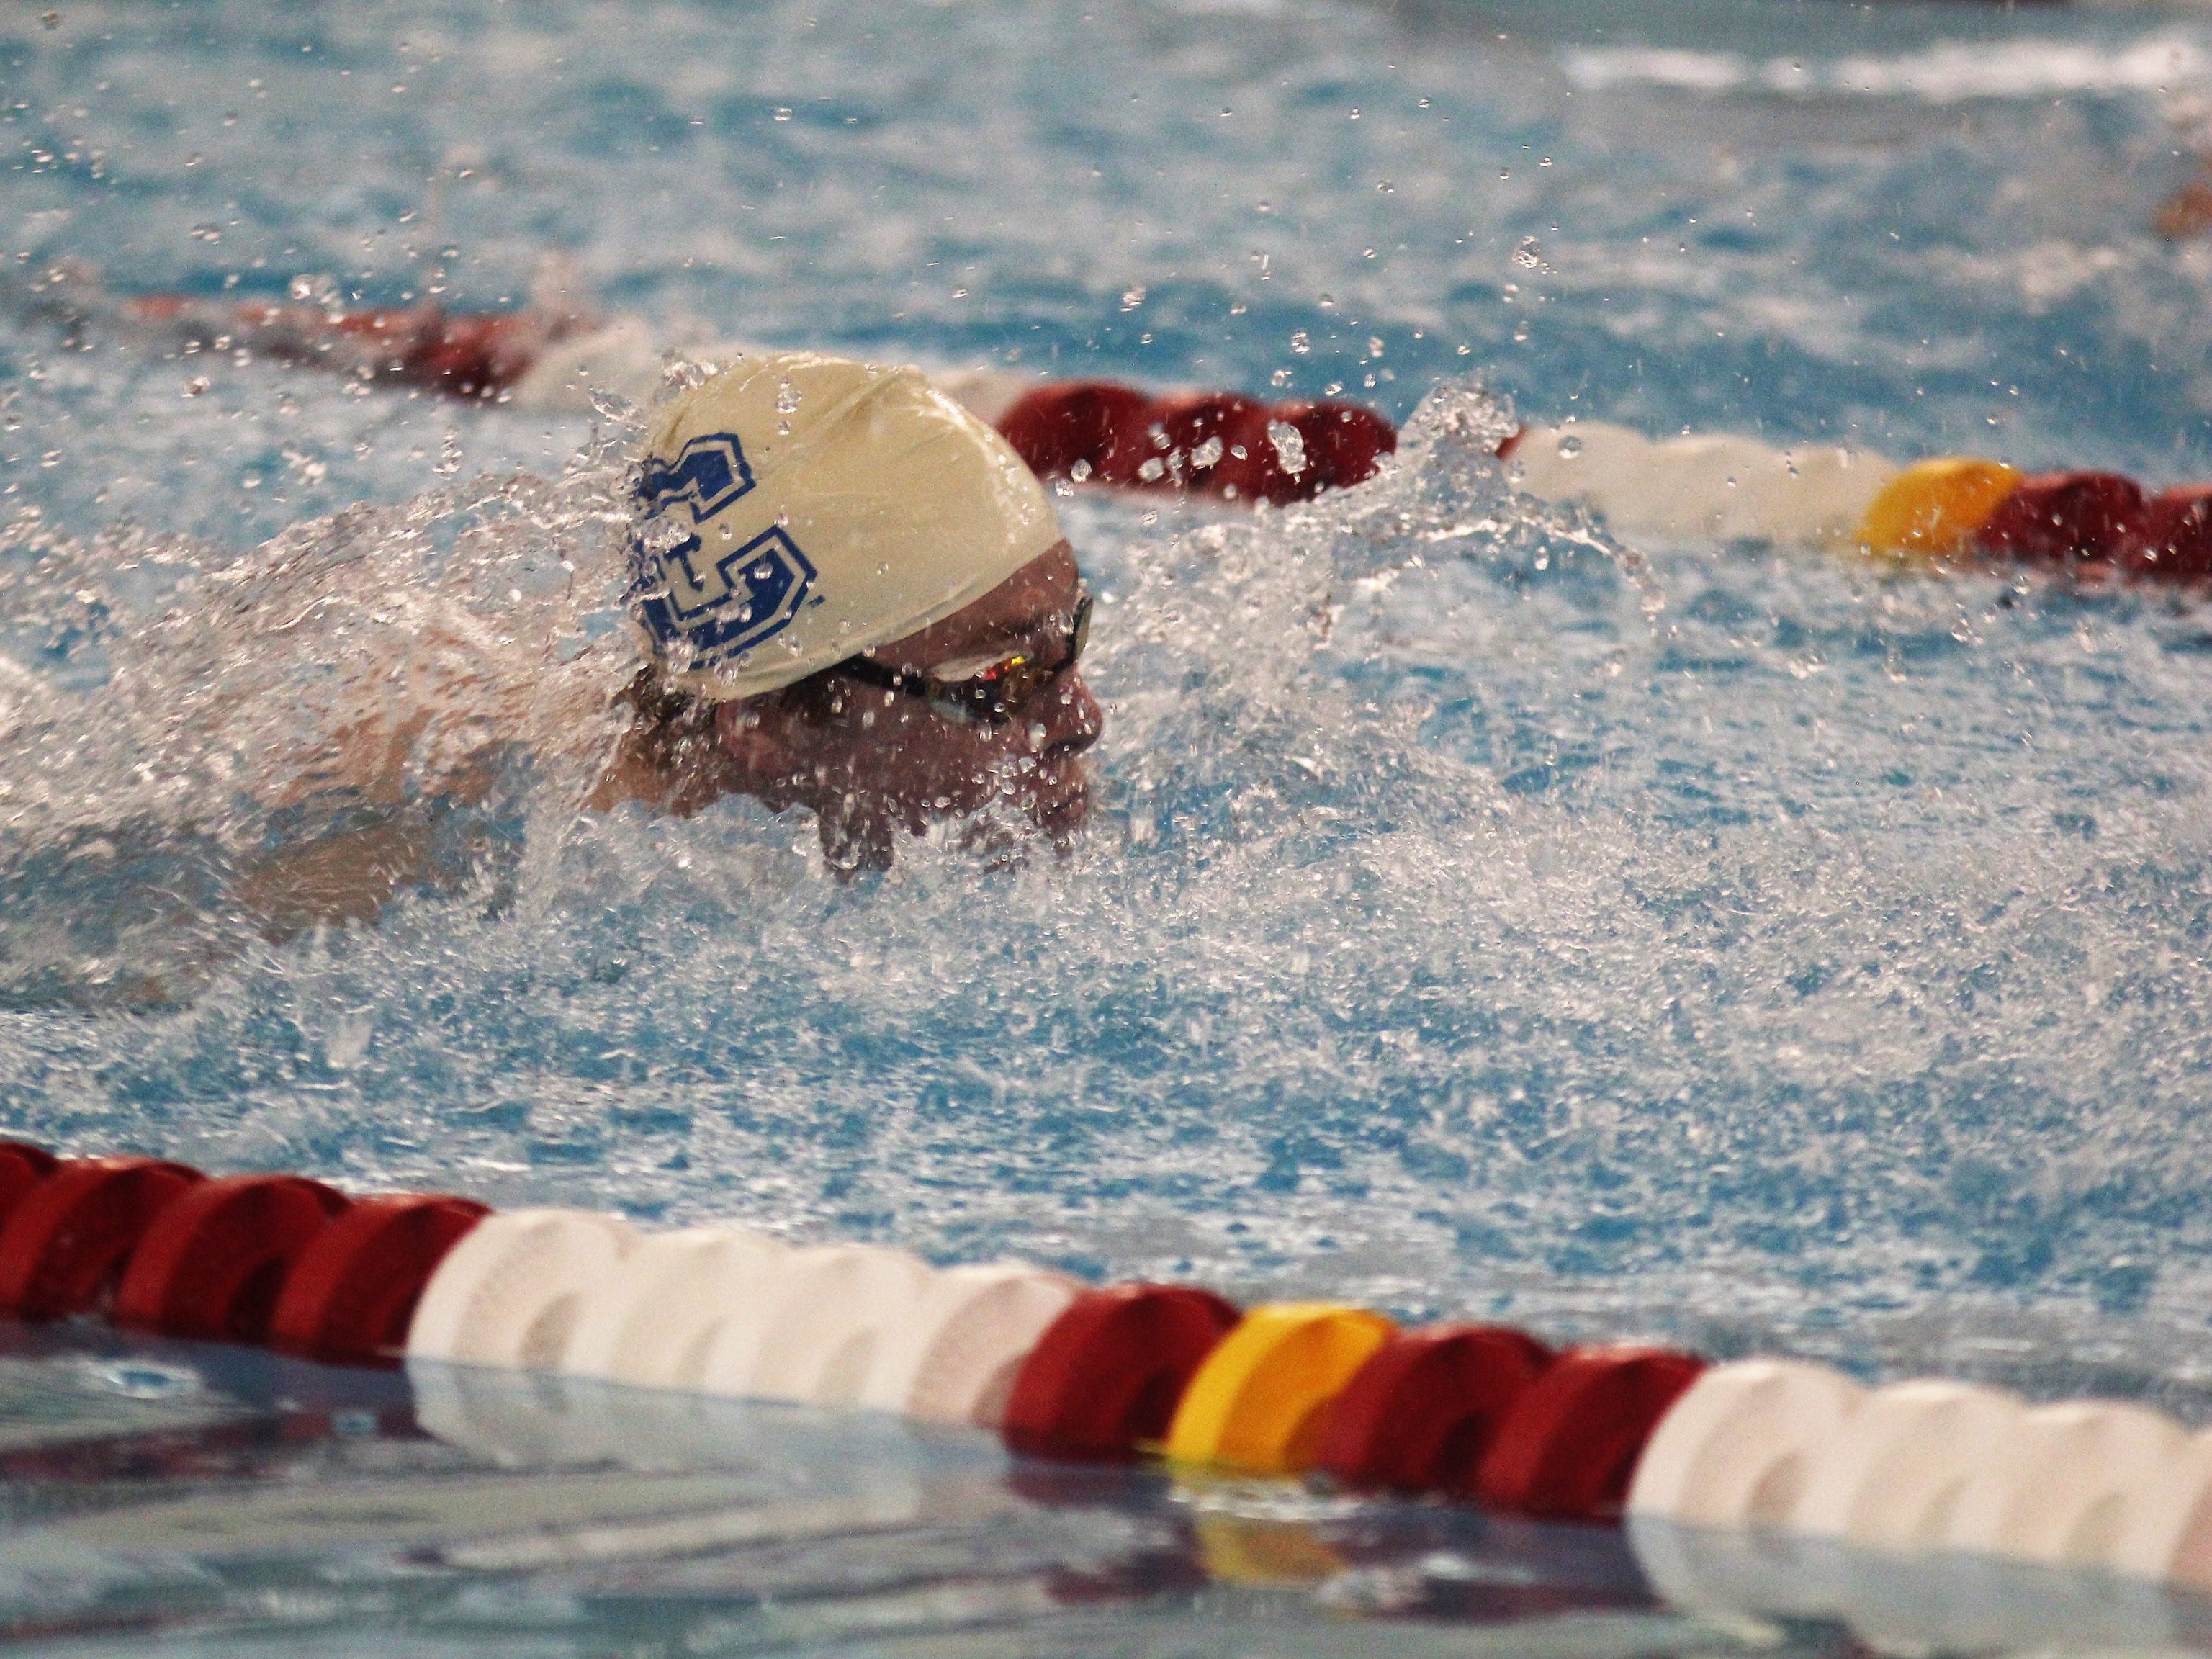 CovCath sophomore Parker Knollman in the 100 butterfly during the KHSAA boys state swimming and diving championships Feb. 22, 2019 at the University of Louisville.